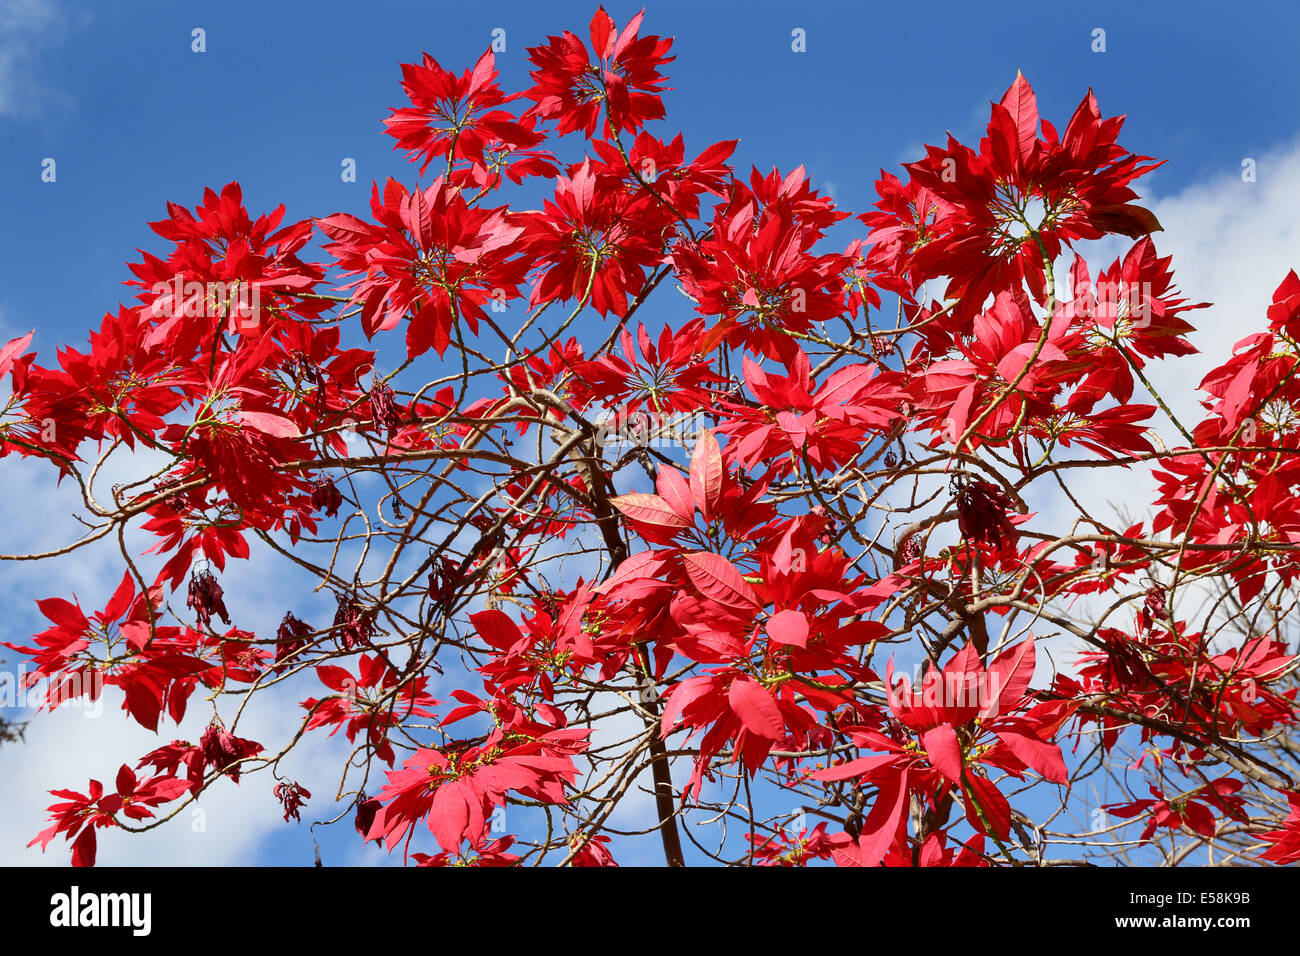 poinsettia tree stockfotos poinsettia tree bilder alamy. Black Bedroom Furniture Sets. Home Design Ideas